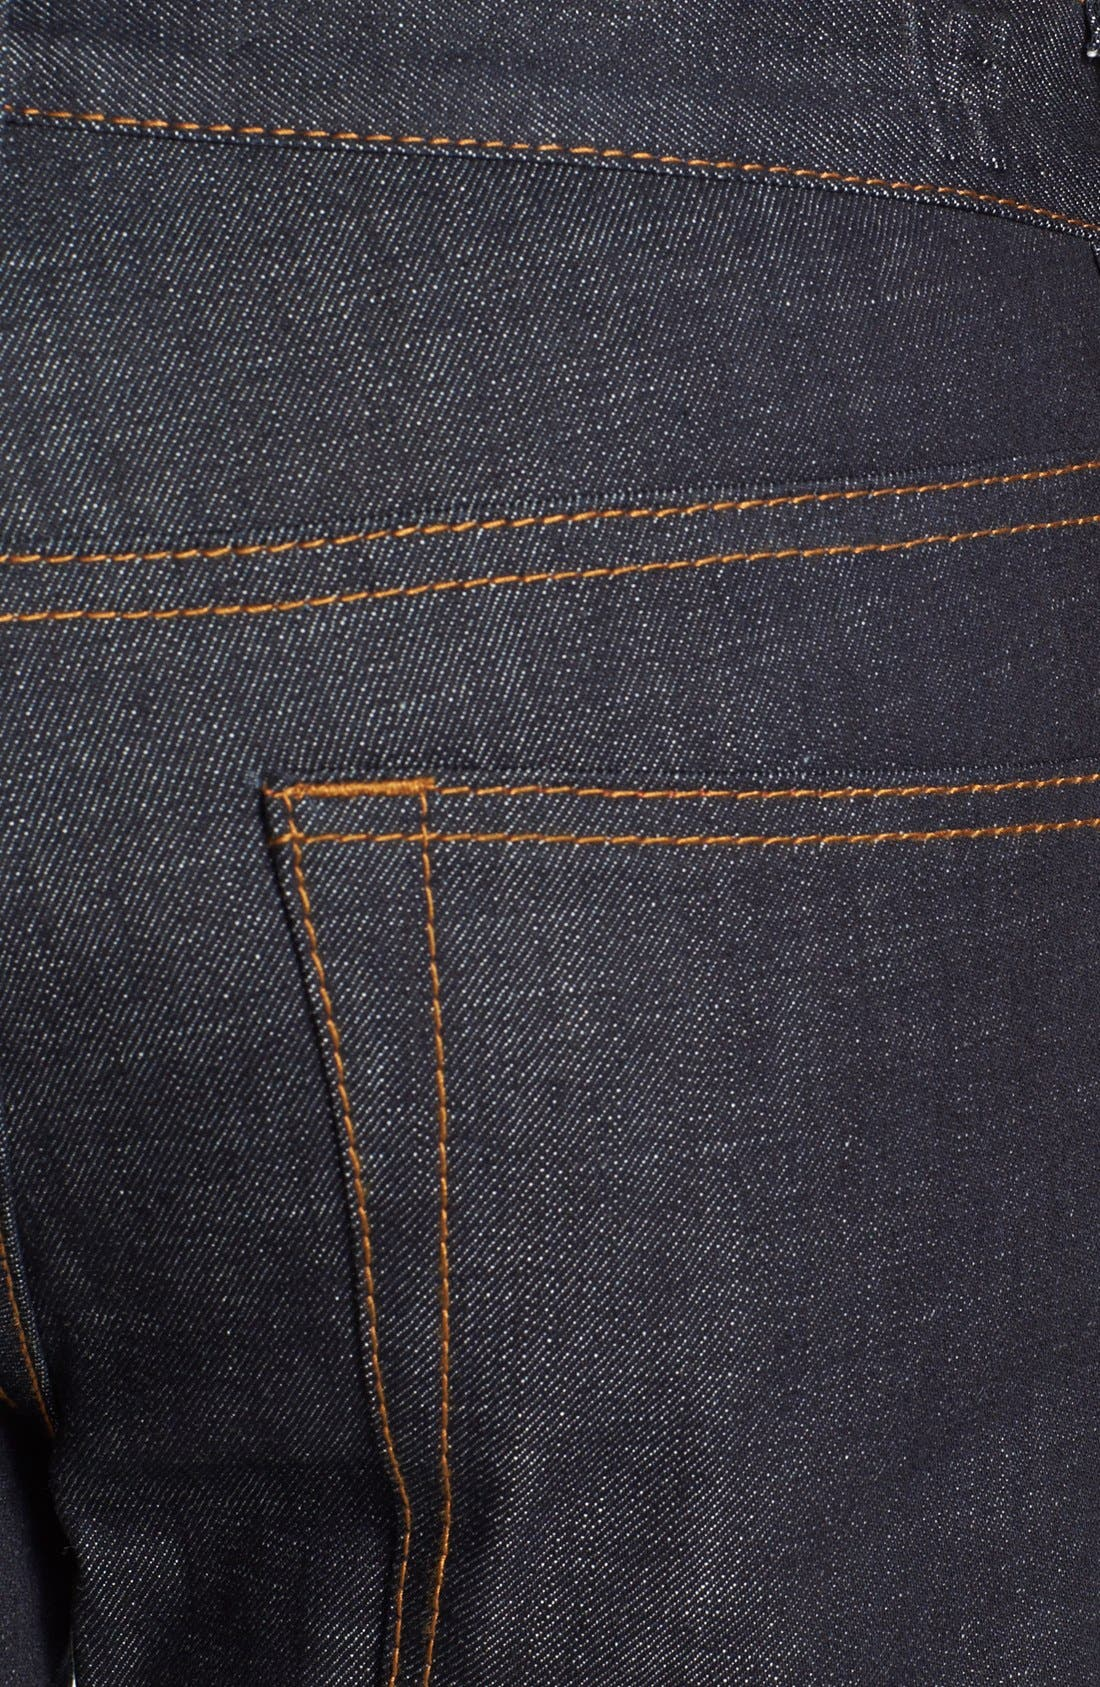 'Grand Street' Slim Fit Jeans,                             Alternate thumbnail 2, color,                             400